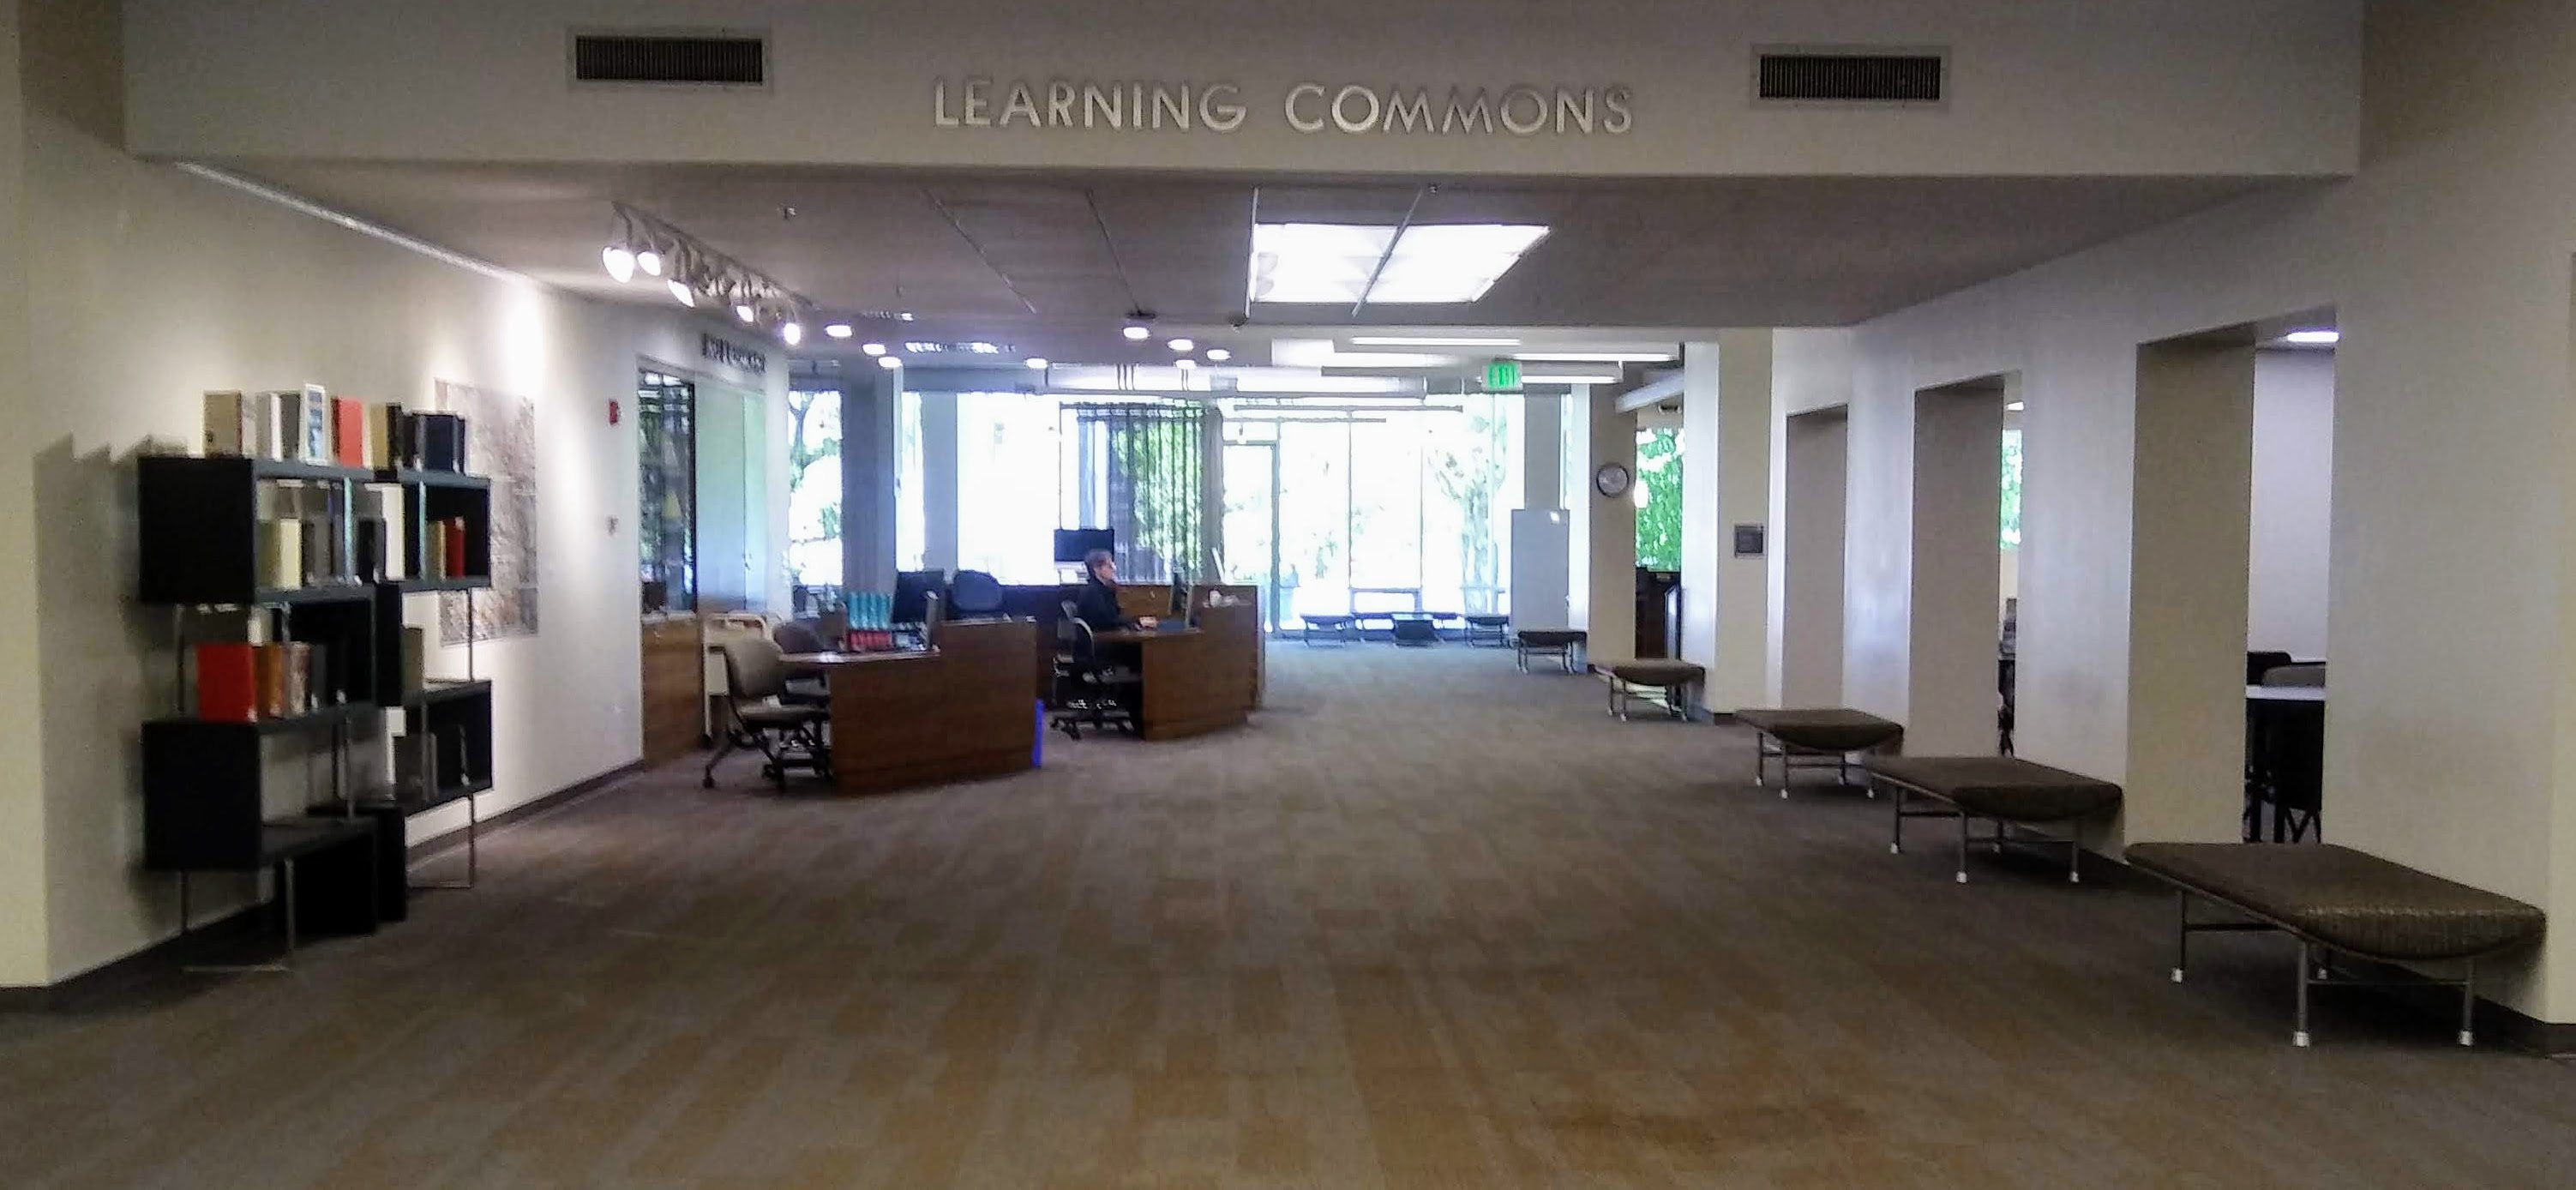 photograph of learning commons with Info & Research Help Desk on the left